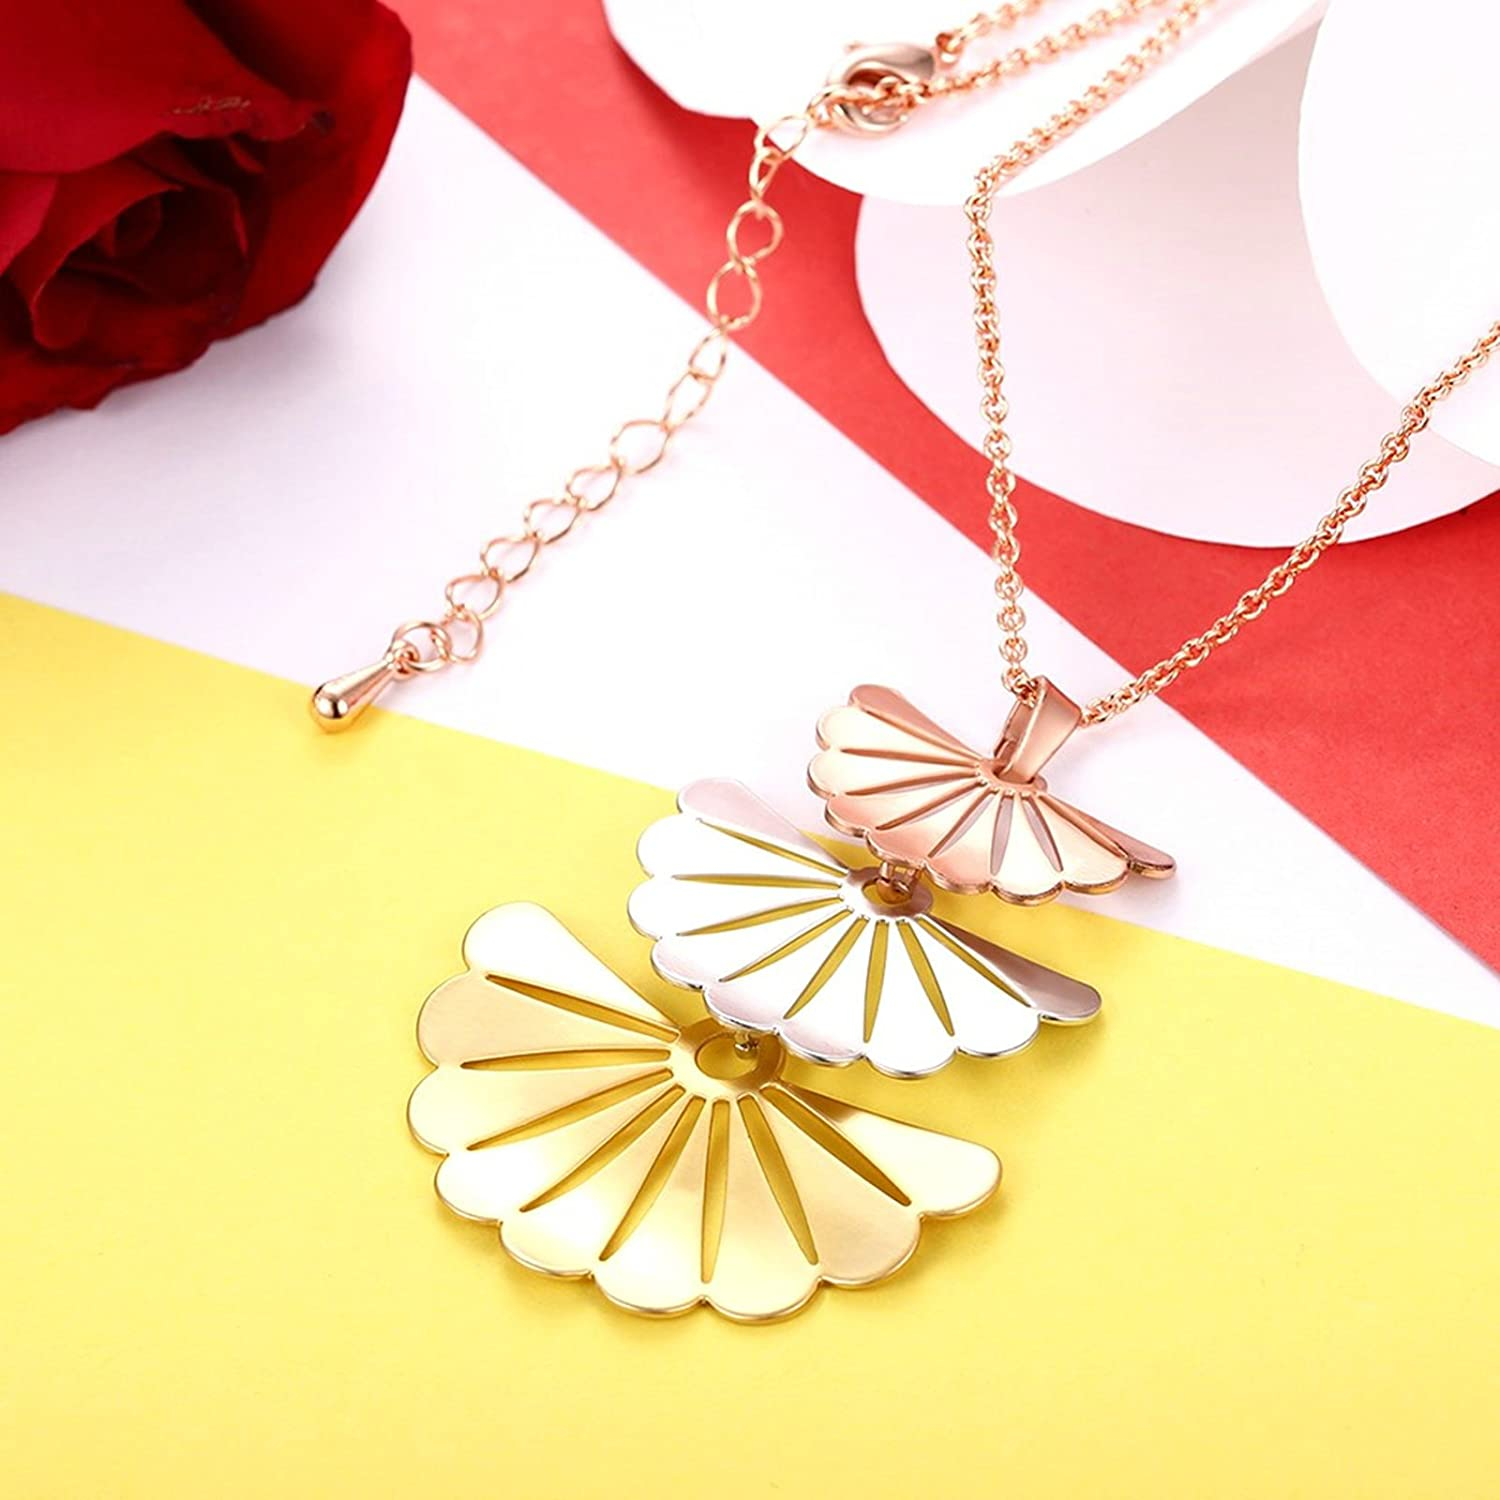 46+6CM KnSam Necklace for Women Sector Color Chain Length